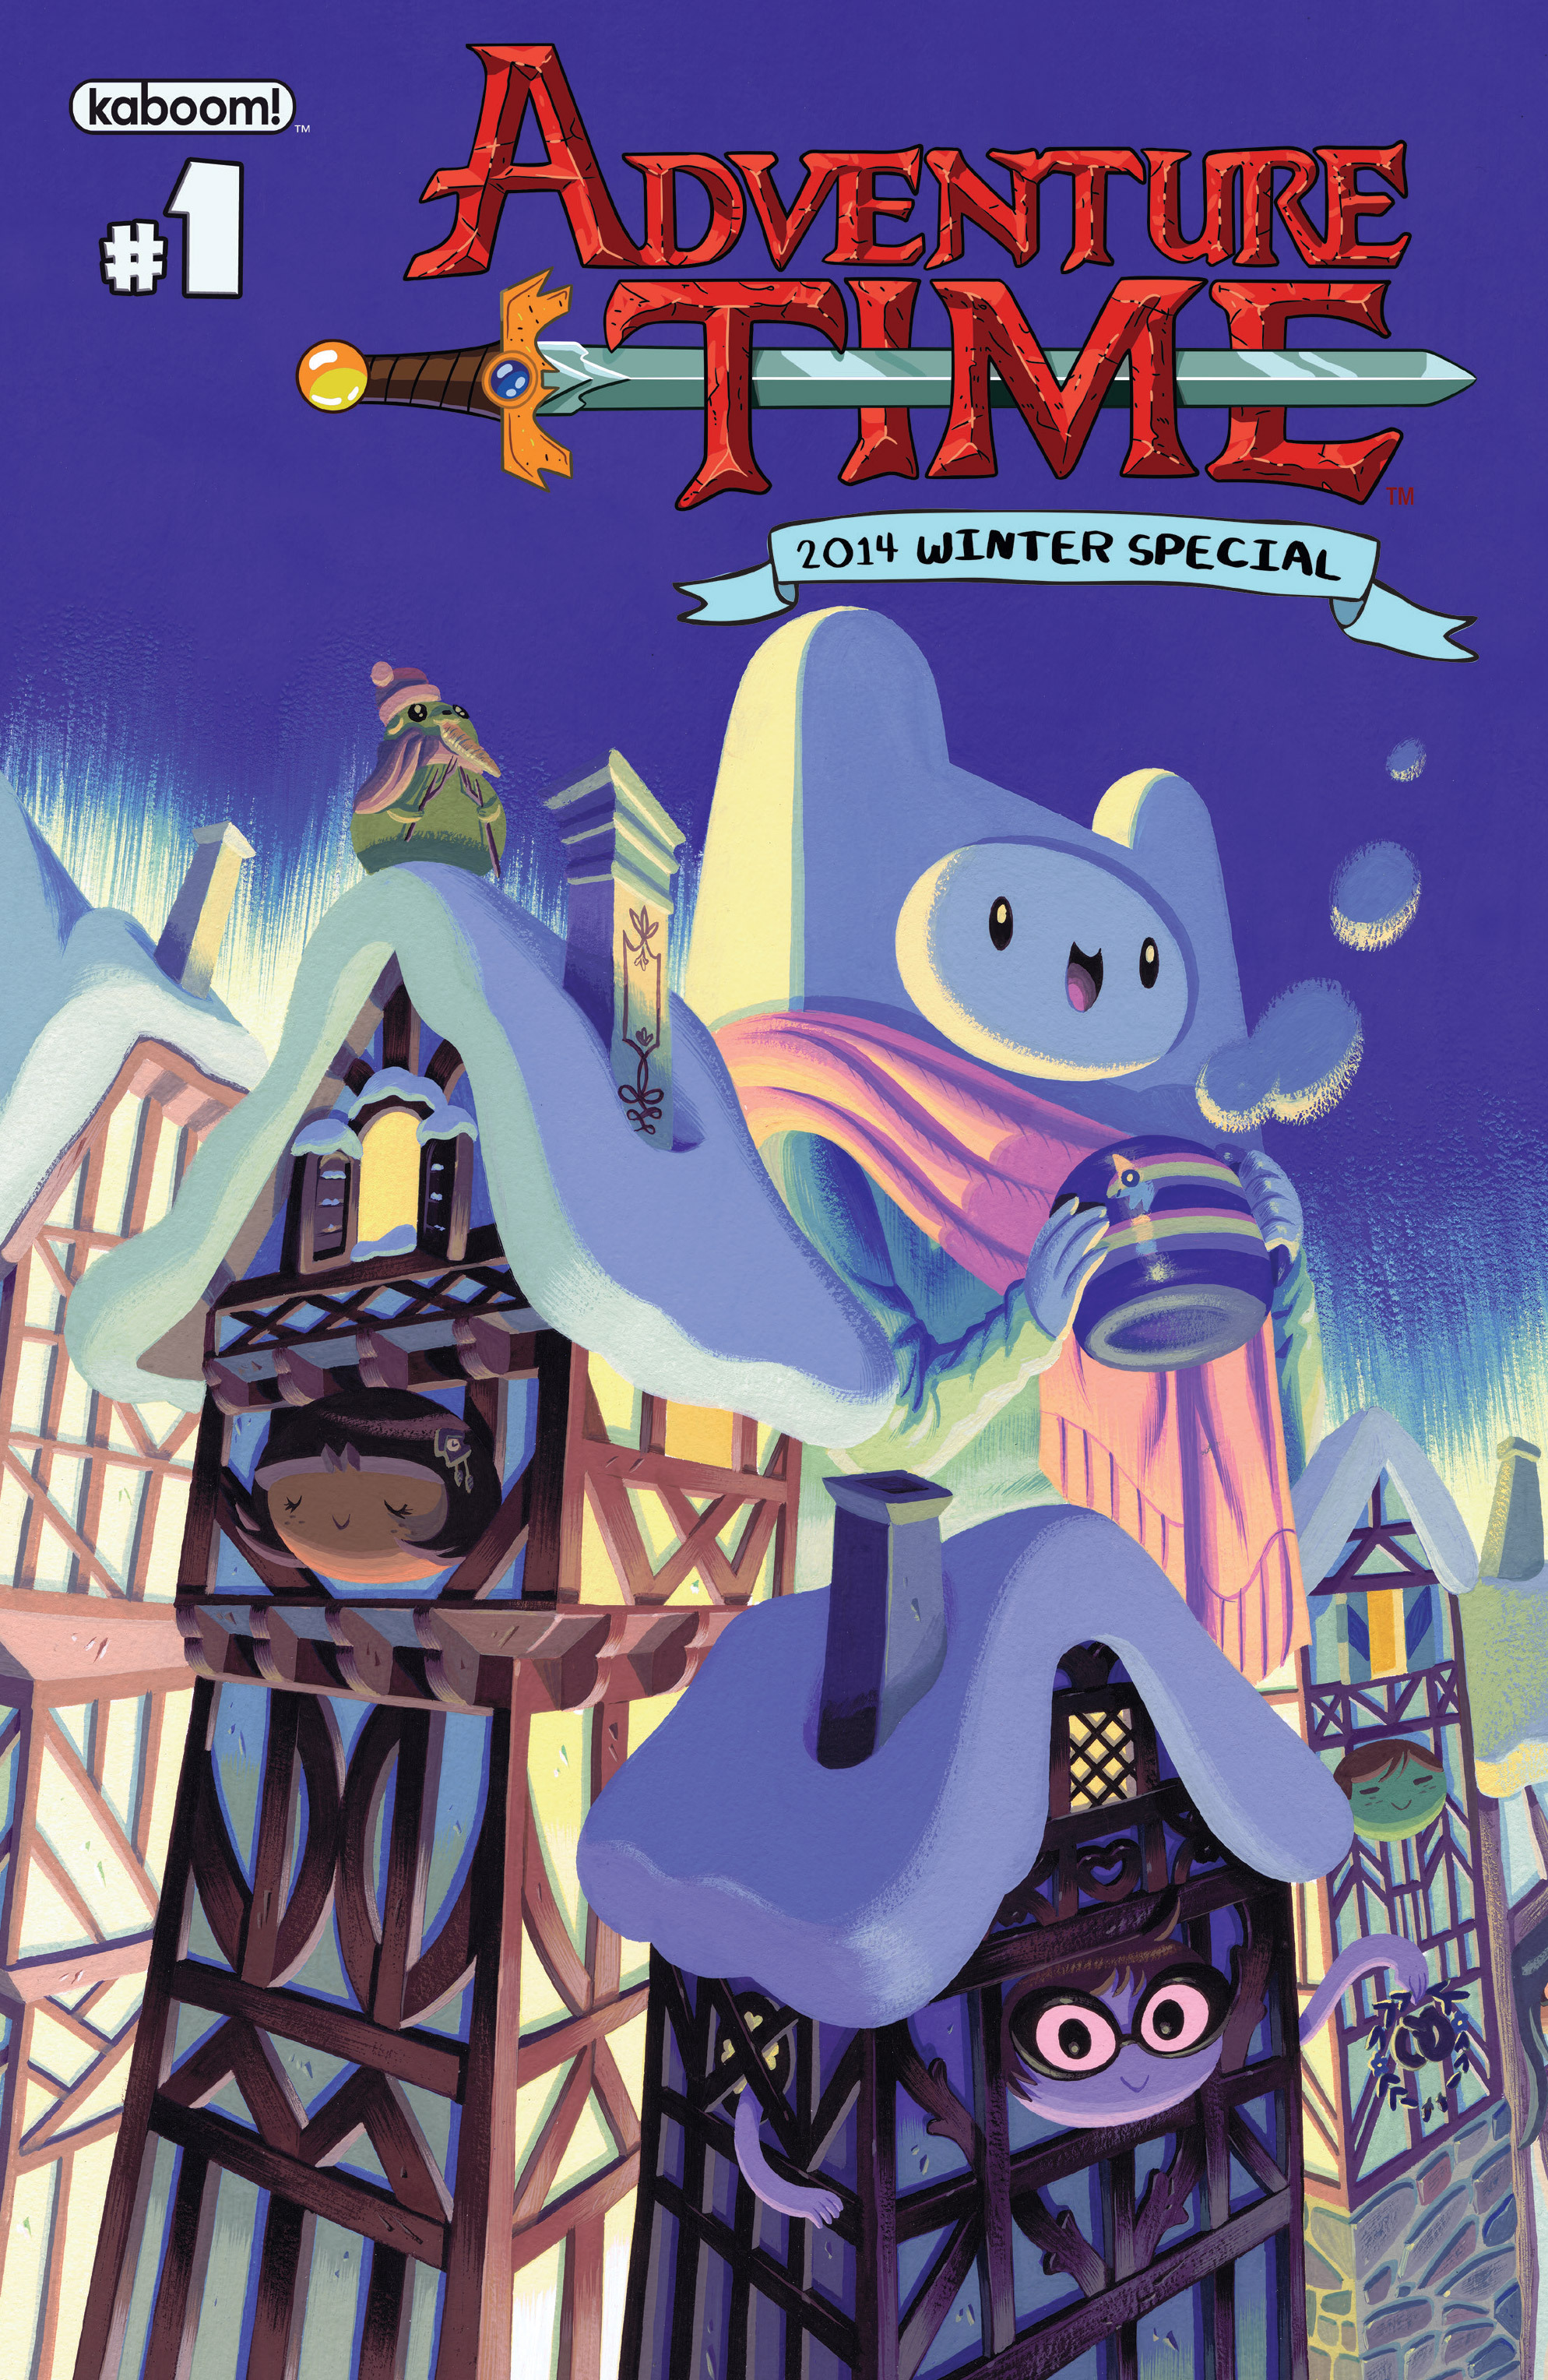 Adventure Time 2014 Winter Special Full Page 1